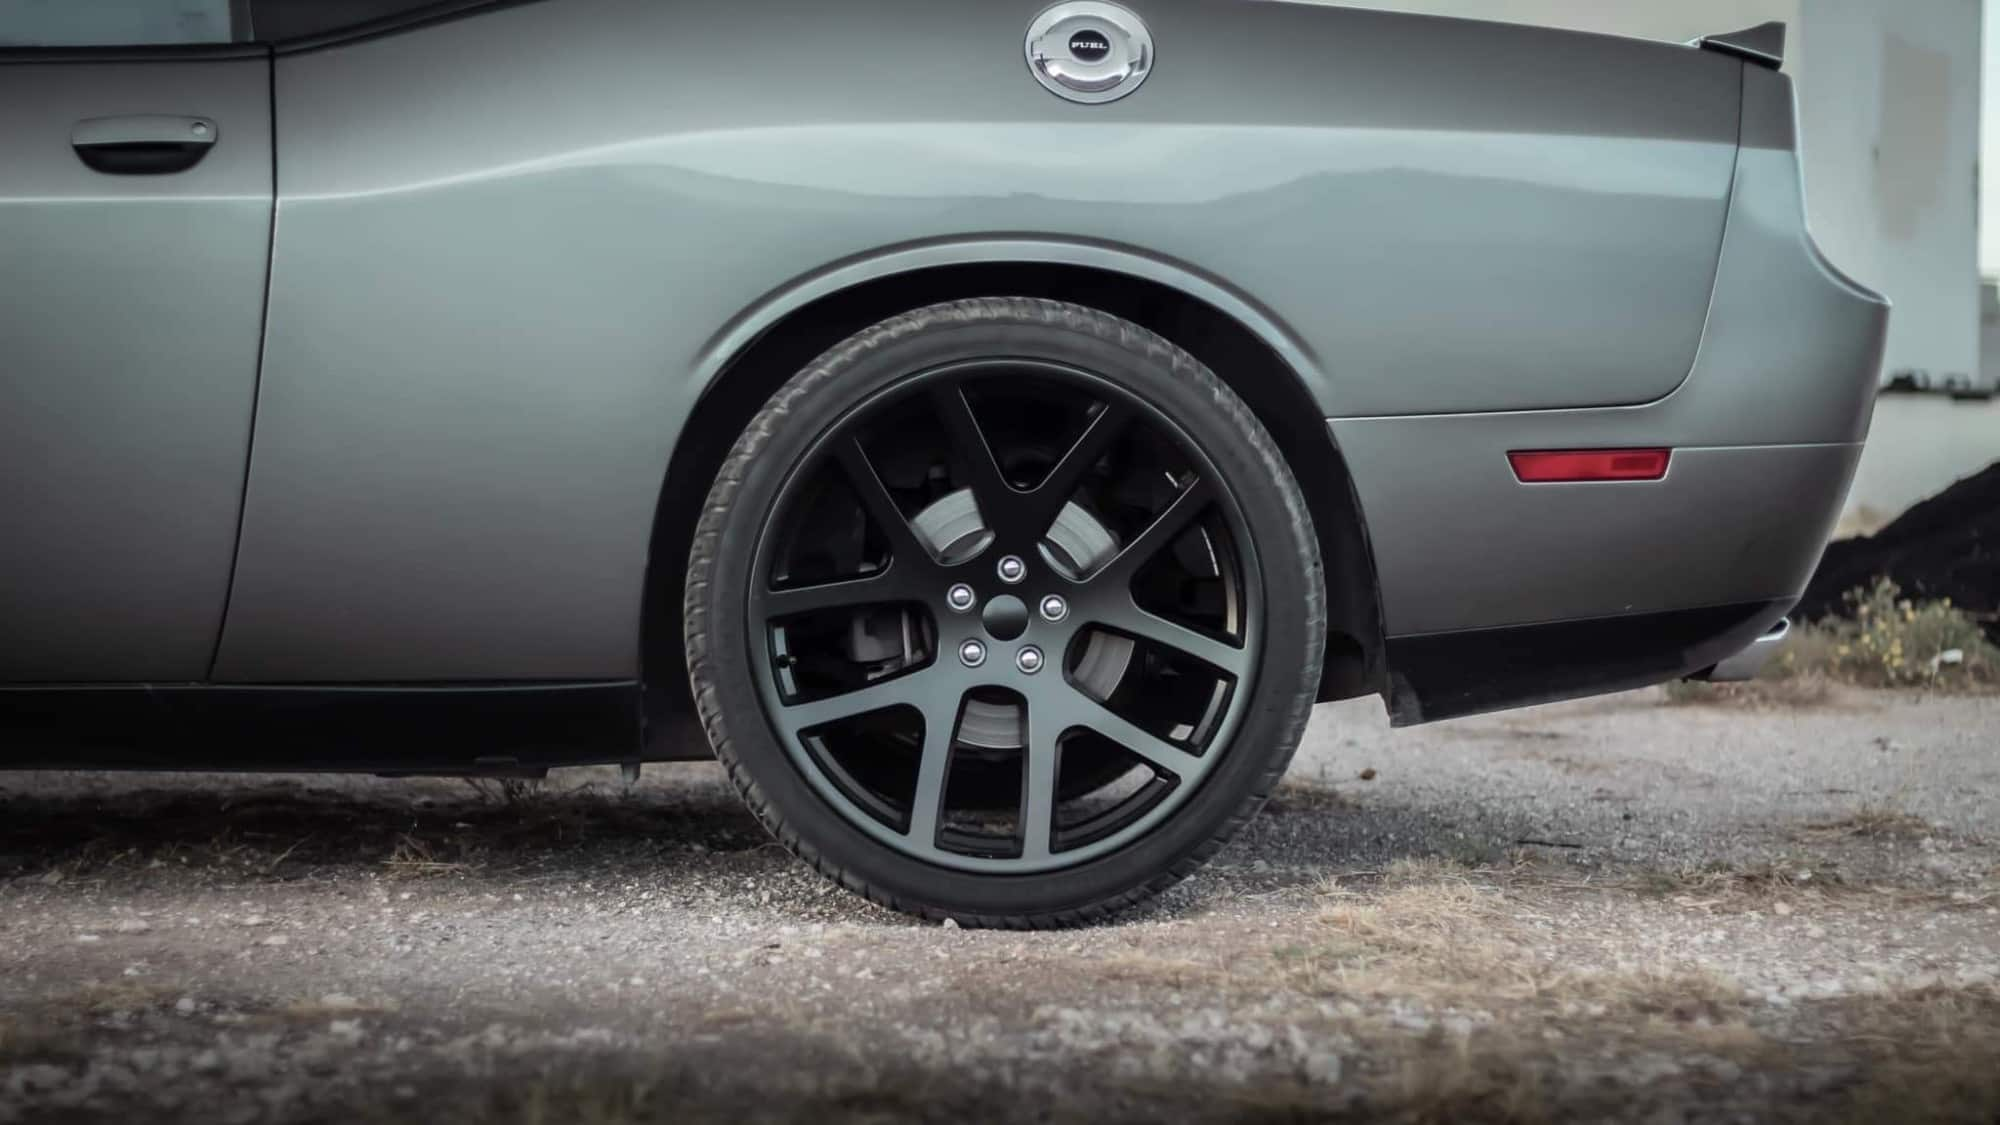 A close up on the Factory Reproductions Fr64 22x10 +18  on this Challenger R/T